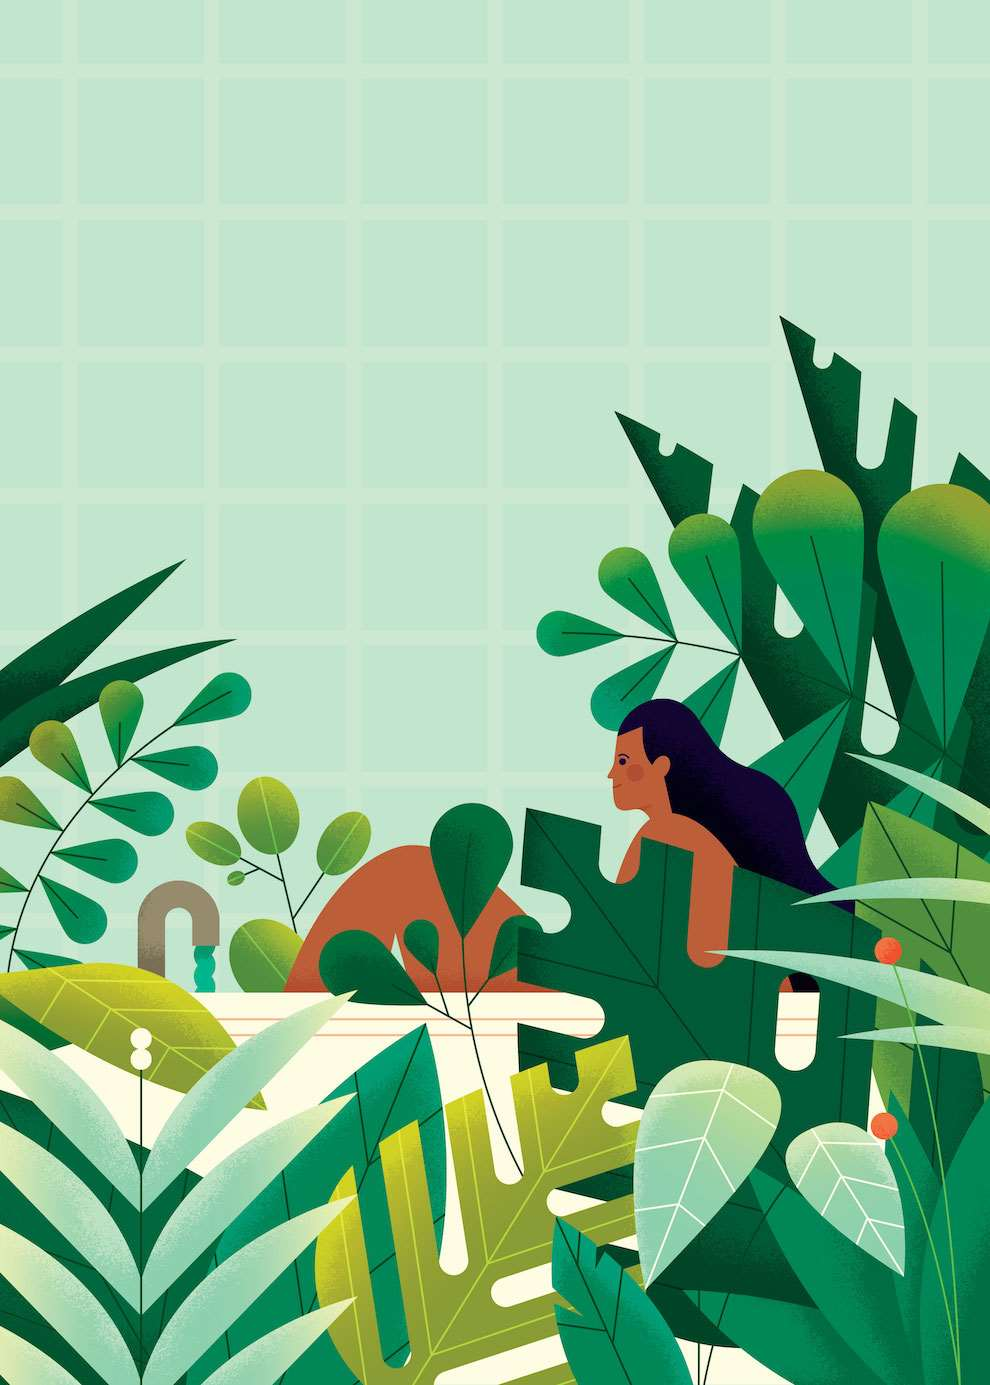 Parko Polo, Graphic illustration of a women in her bath surrounded by plants